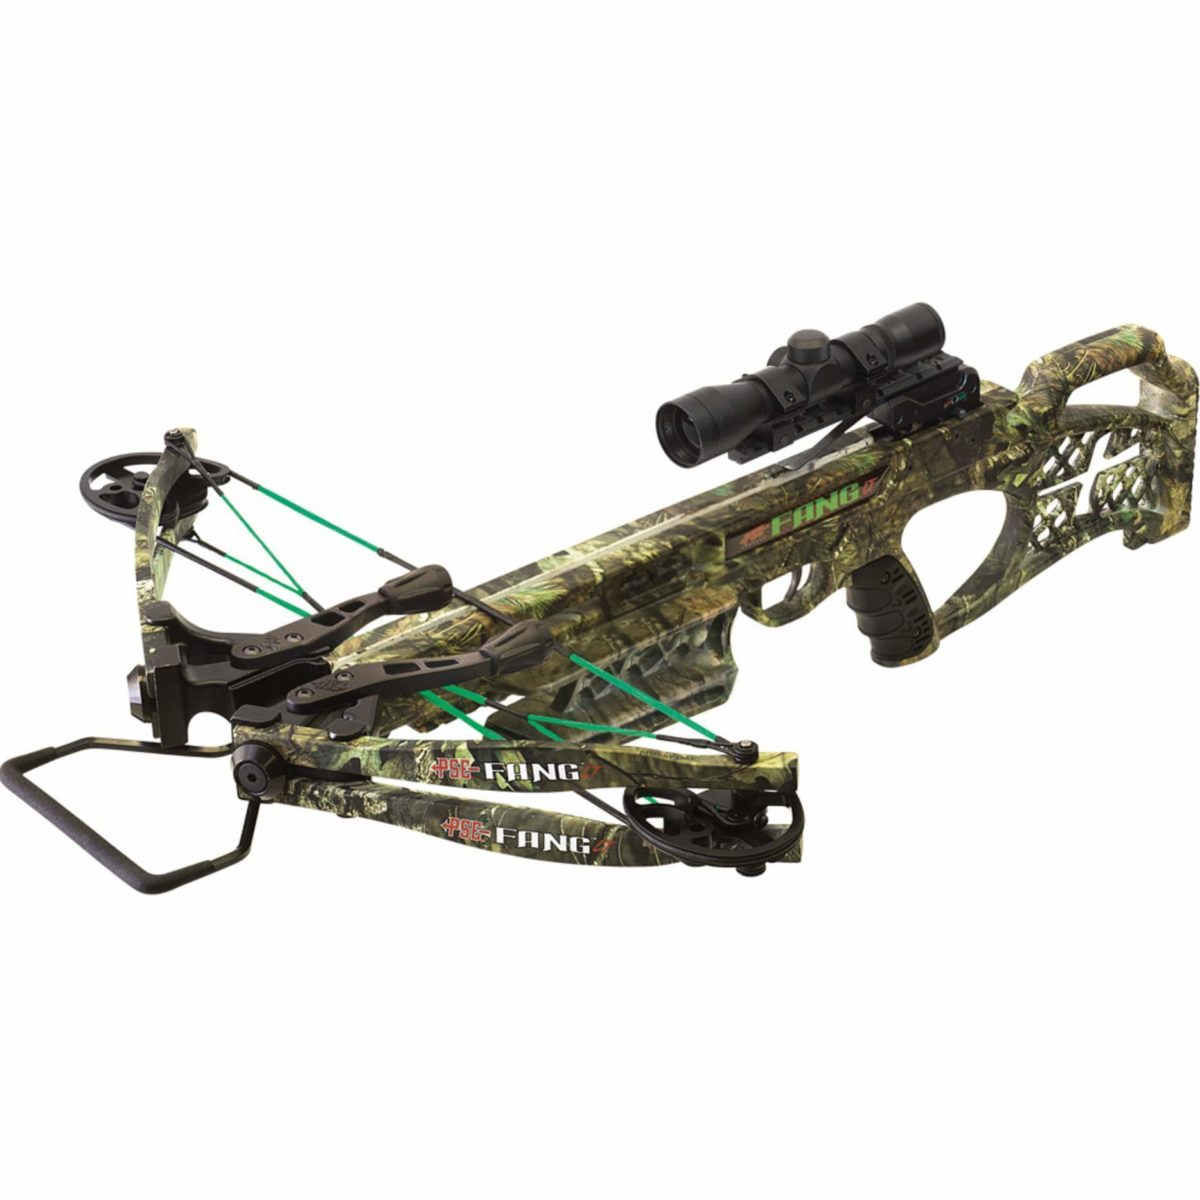 PSE Archery Fang LT Crossbow Package for Sale